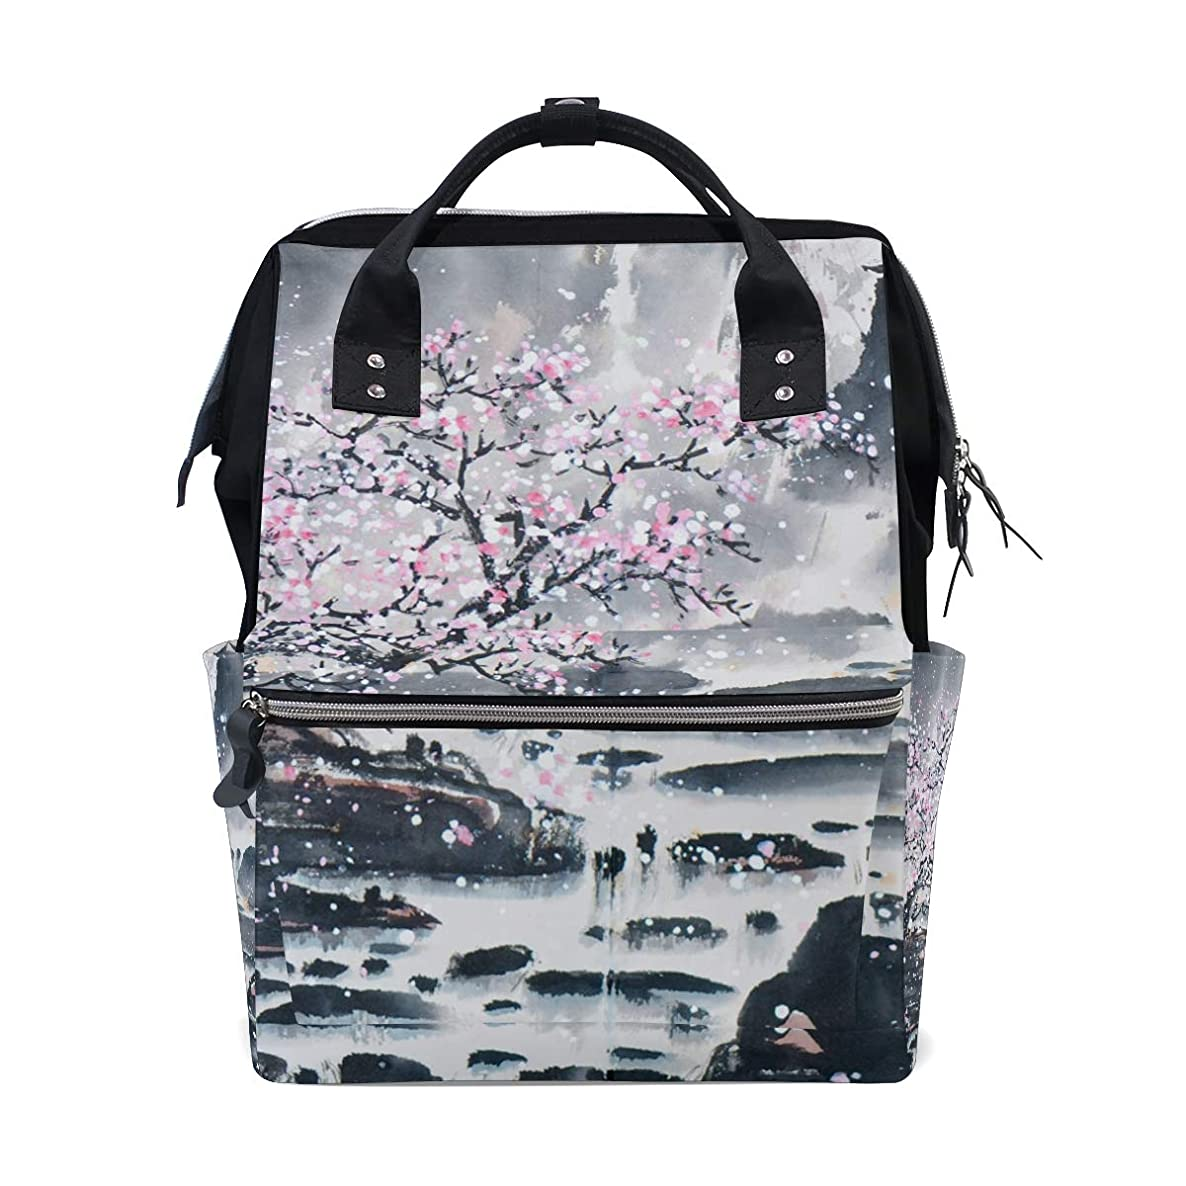 Chinese Landscape Plum Painting School Backpack Large Capacity Mummy Bags Laptop Handbag Casual Travel Rucksack Satchel For Women Men Adult Teen Children